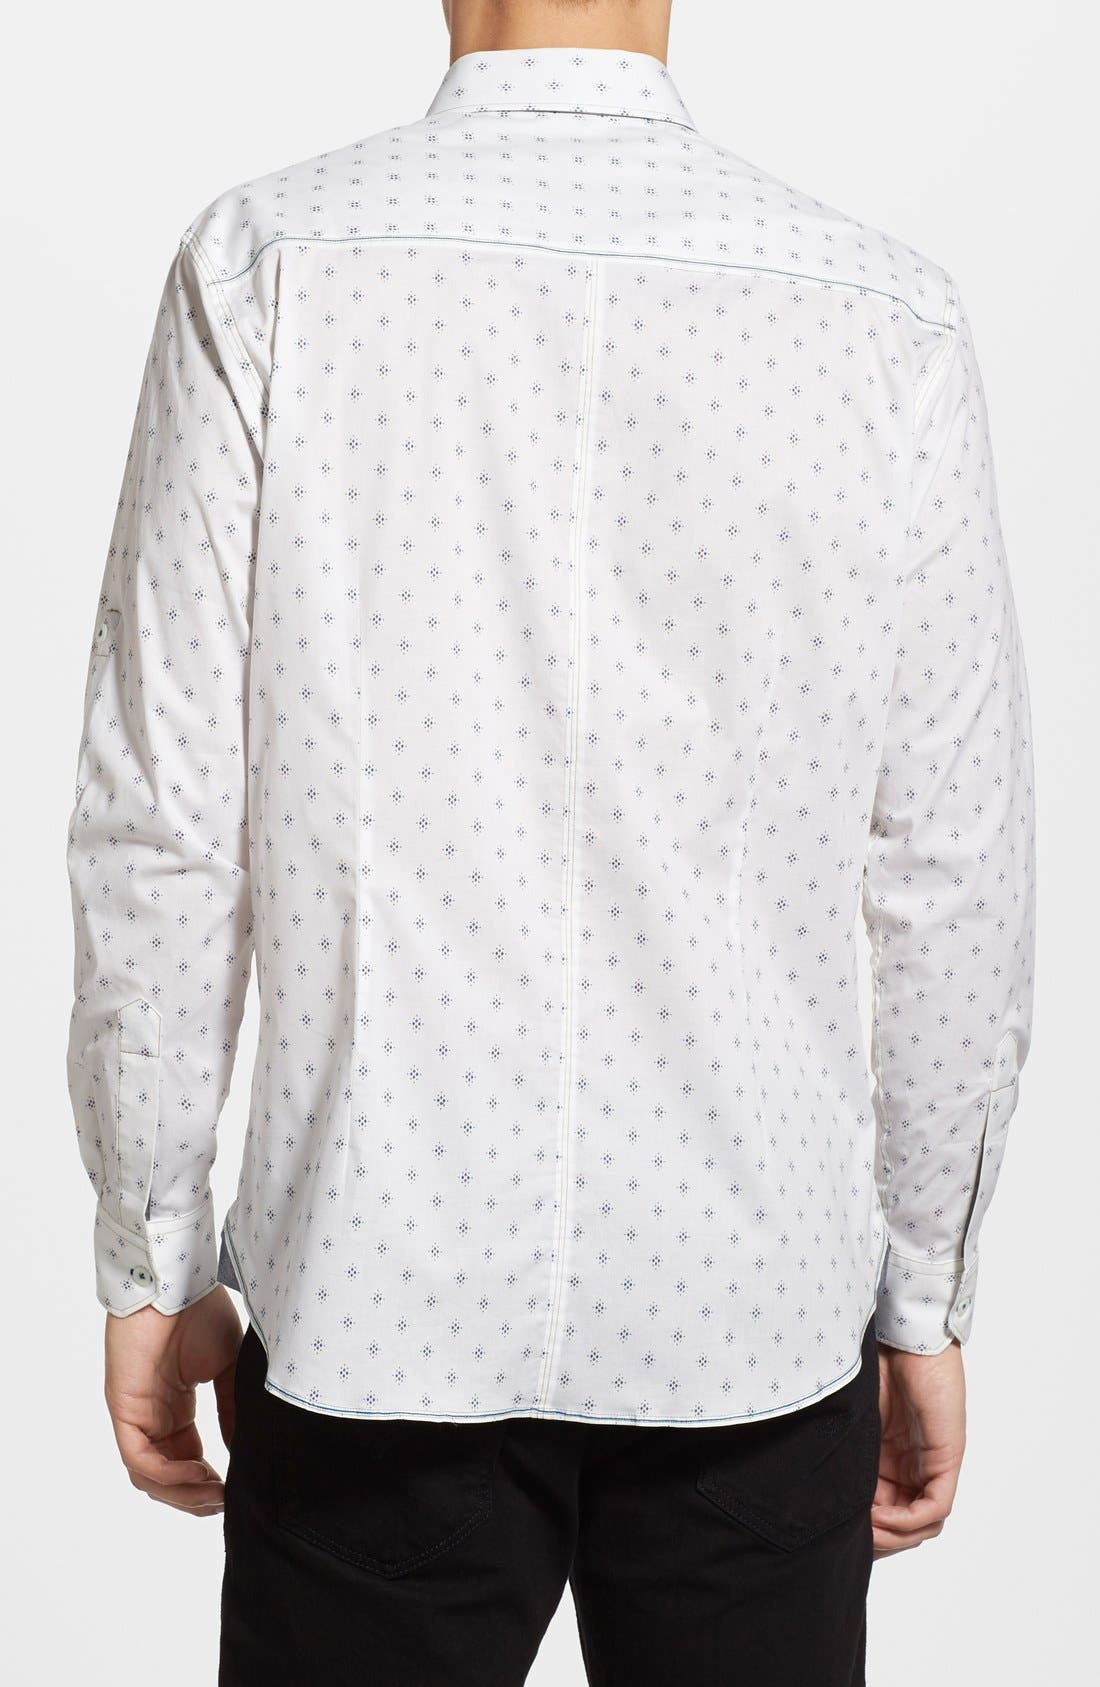 'Reflector' Trim Fit Woven Shirt,                             Alternate thumbnail 2, color,                             White